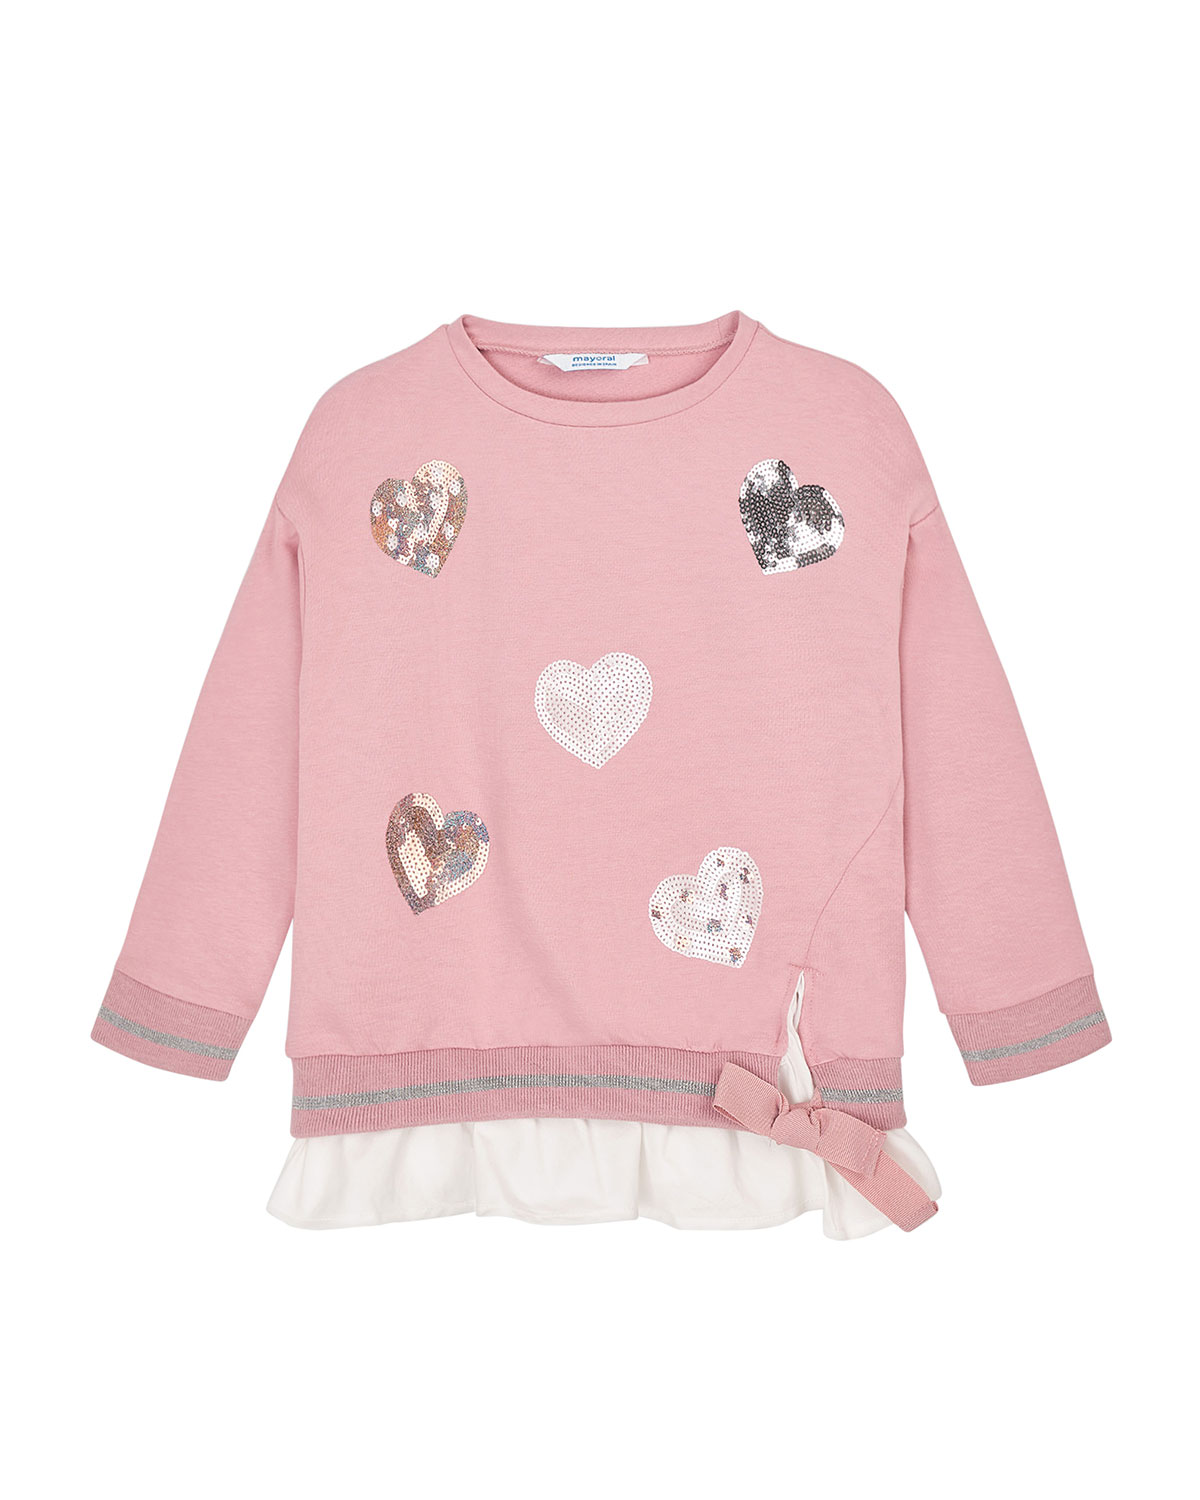 Mayoral Girl's Sequin Hearts Sweatshirt, Size 4-8